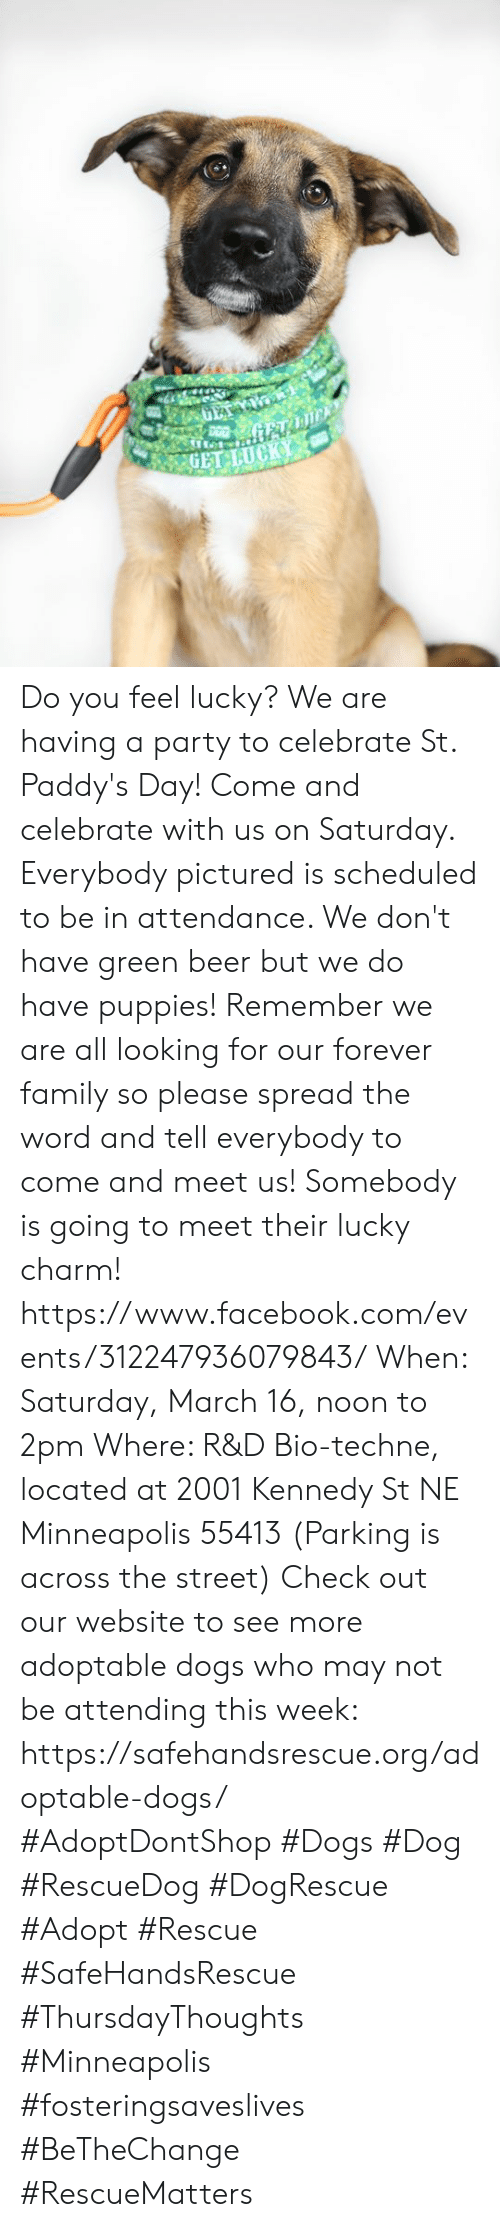 do you feel lucky: Do you feel lucky? We are having a party to celebrate St. Paddy's Day! Come and celebrate with us on Saturday. Everybody pictured is scheduled to be in attendance. We don't have green beer but we do have puppies! Remember we are all looking for our forever family so please spread the word and tell everybody to come and meet us! Somebody is going to meet their lucky charm!  https://www.facebook.com/events/312247936079843/ When: Saturday, March 16, noon to 2pm  Where: R&D Bio-techne, located at 2001 Kennedy St NE Minneapolis 55413 (Parking is across the street)  Check out our website to see more adoptable dogs who may not be attending this week: https://safehandsrescue.org/adoptable-dogs/  #AdoptDontShop #Dogs #Dog #RescueDog #DogRescue #Adopt #Rescue #SafeHandsRescue #ThursdayThoughts  #Minneapolis #fosteringsaveslives #BeTheChange #RescueMatters